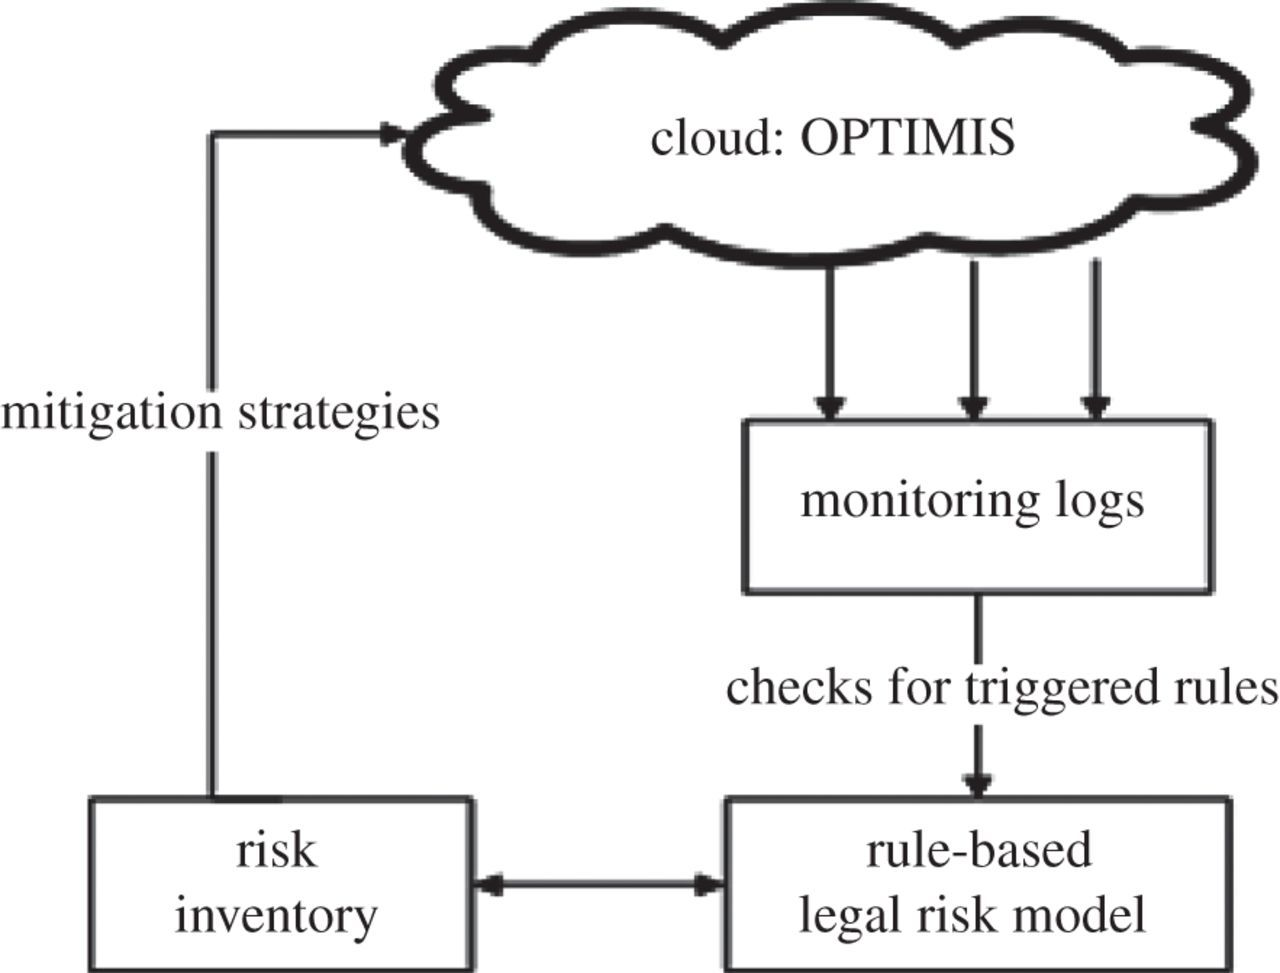 Legal issues in clouds: towards a risk inventory